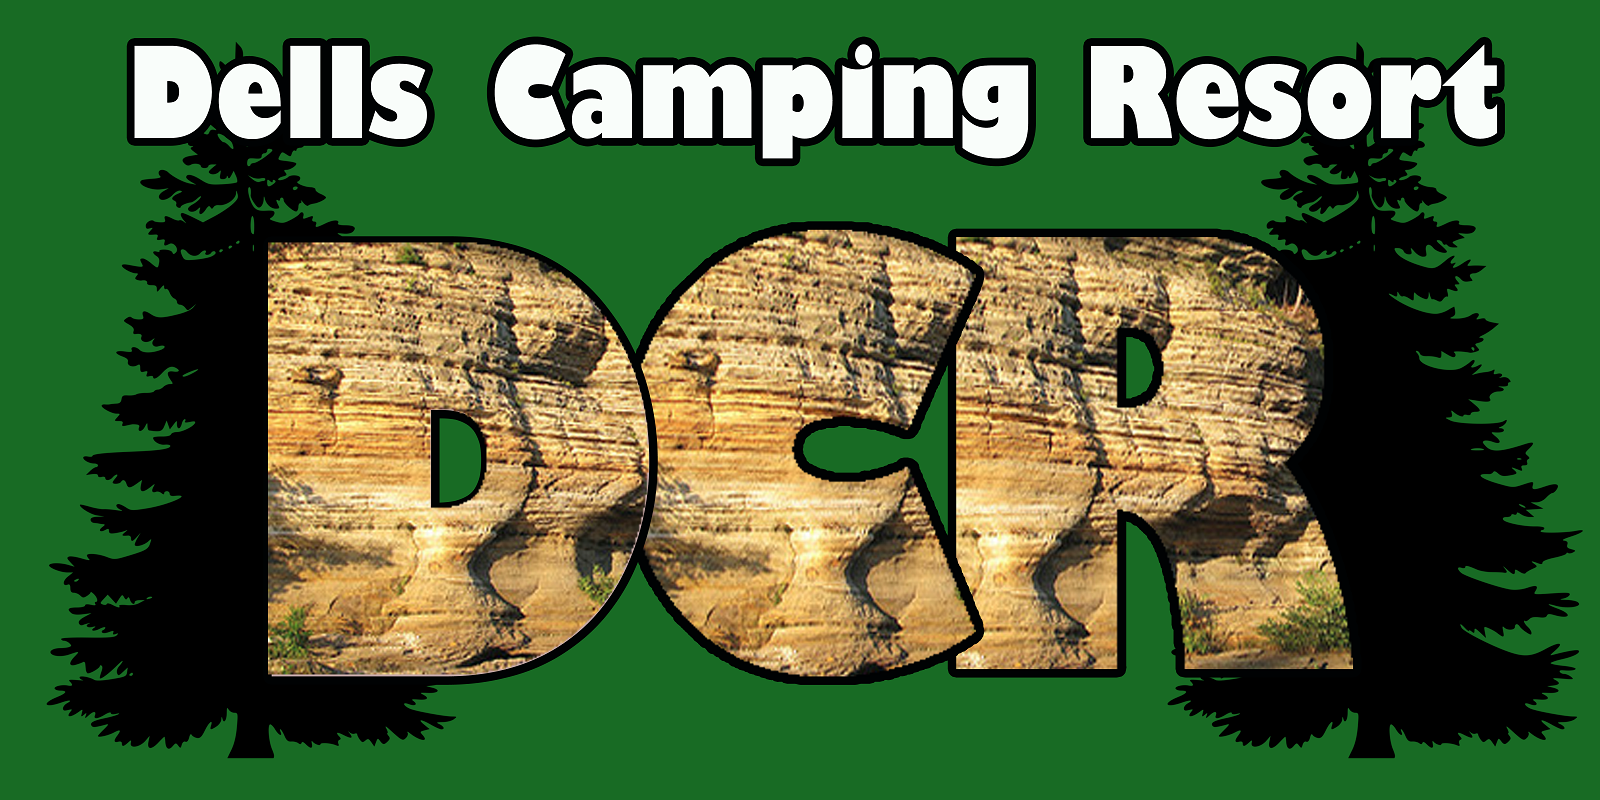 Dells Camping Resort